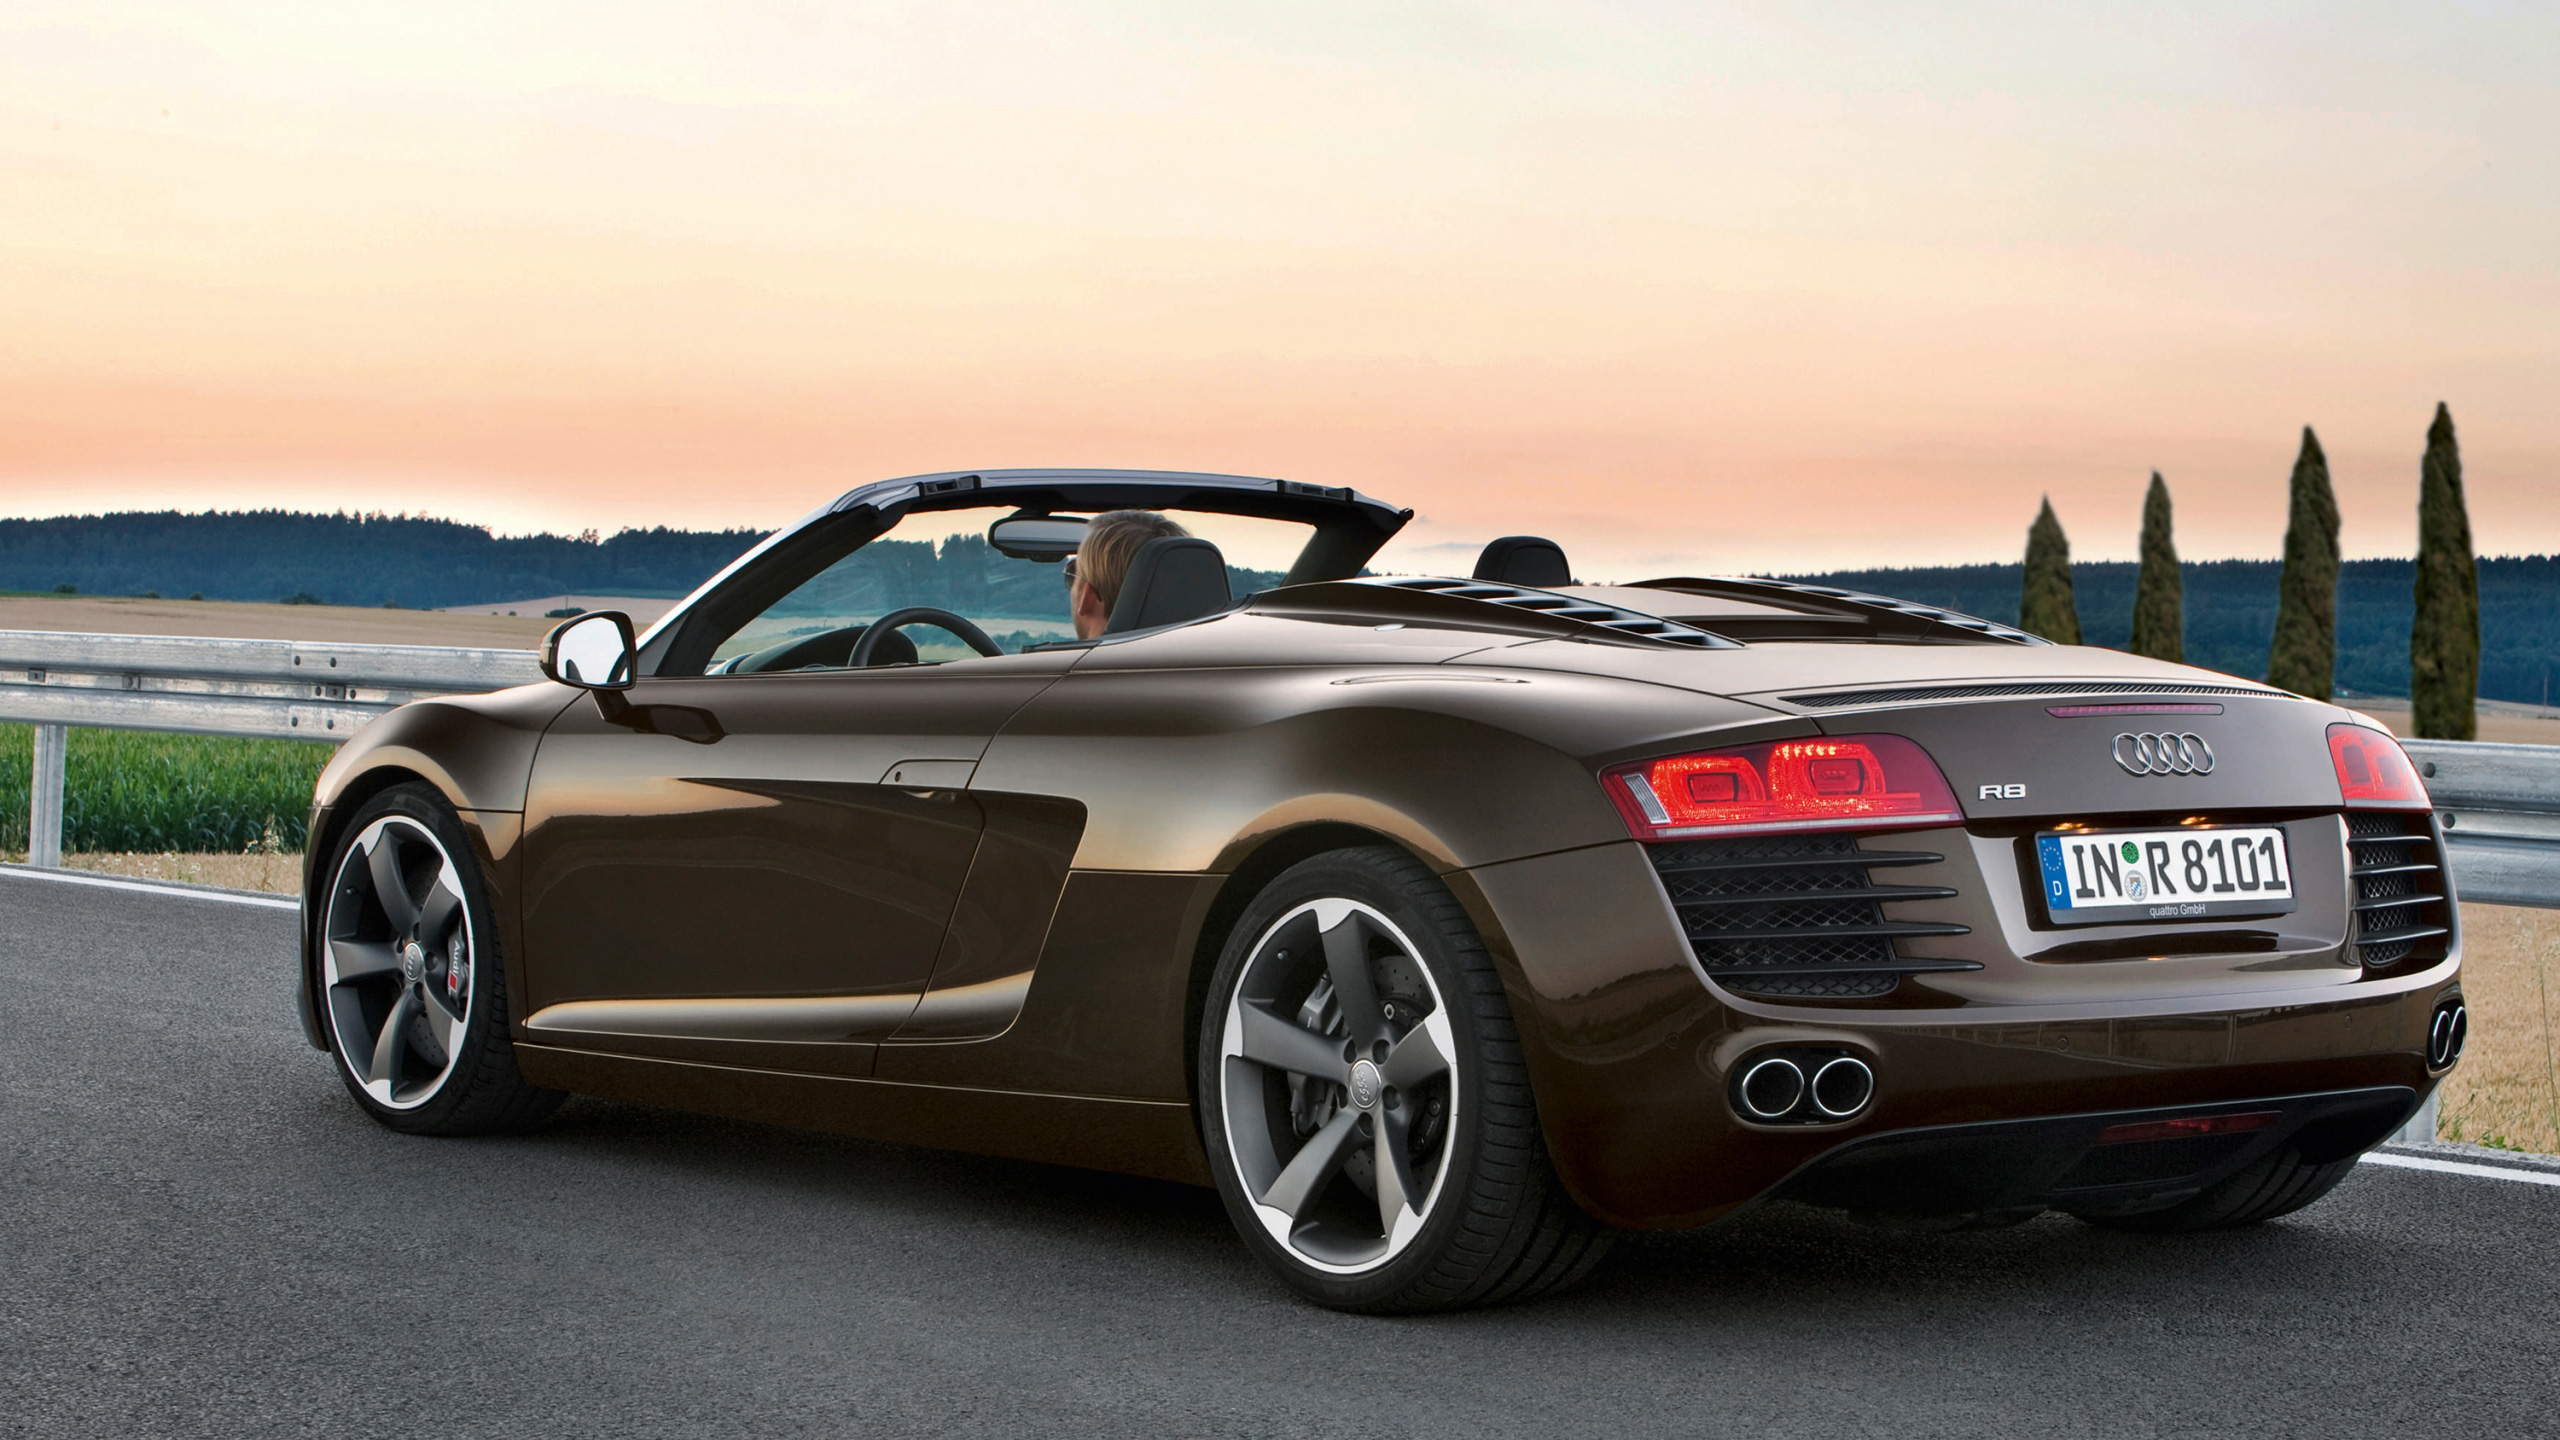 audi r8 v12 wallpaper 47 wallpapers hd wallpapers. Black Bedroom Furniture Sets. Home Design Ideas